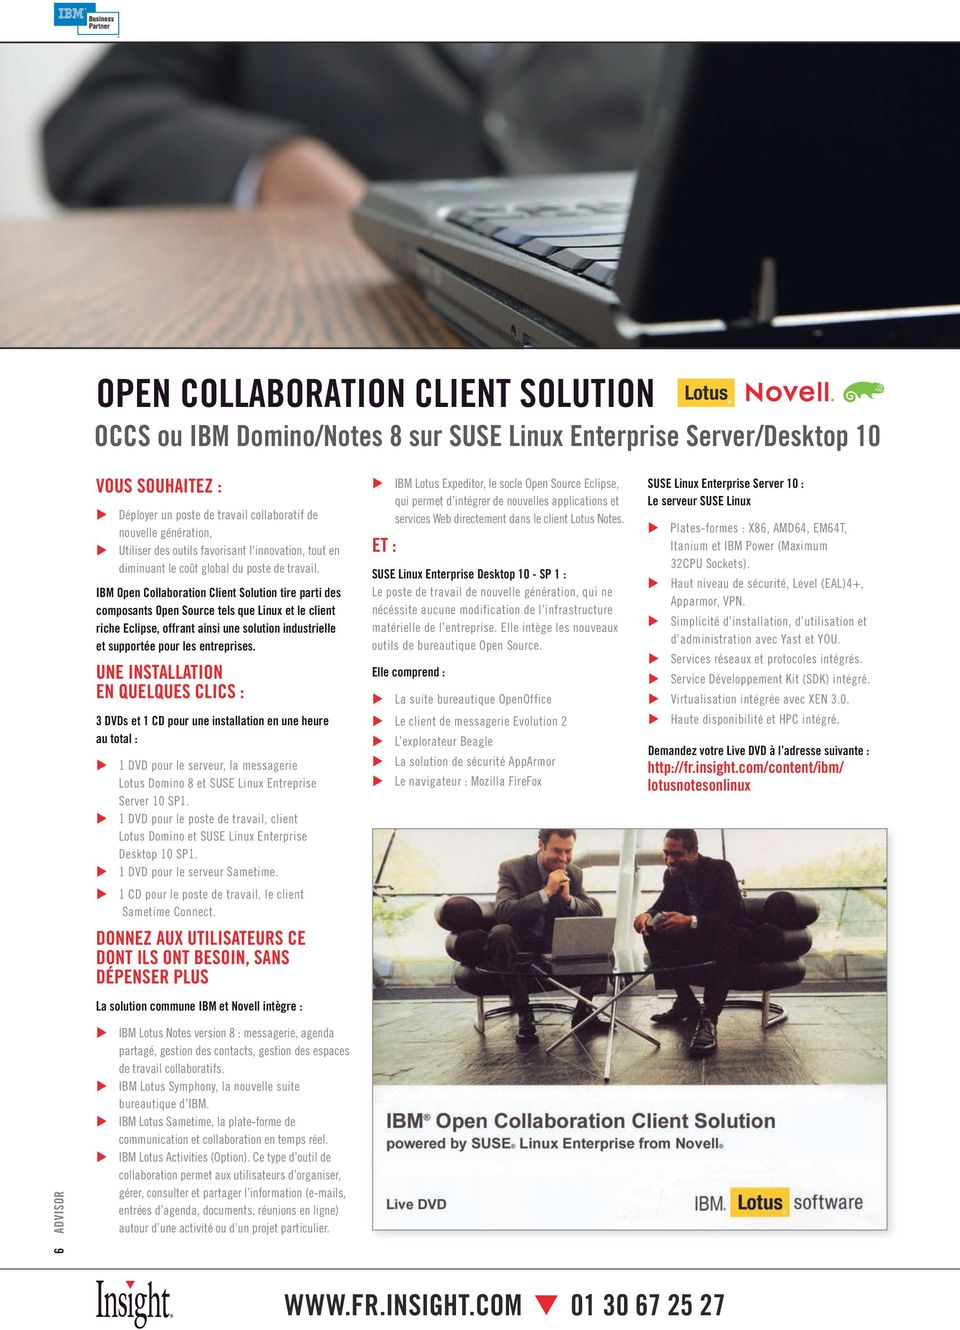 IBM Open Collaboration Client Solution tire parti des composants Open Source tels que Linux et le client riche Eclipse, offrant ainsi une solution industrielle et supportée pour les entreprises.